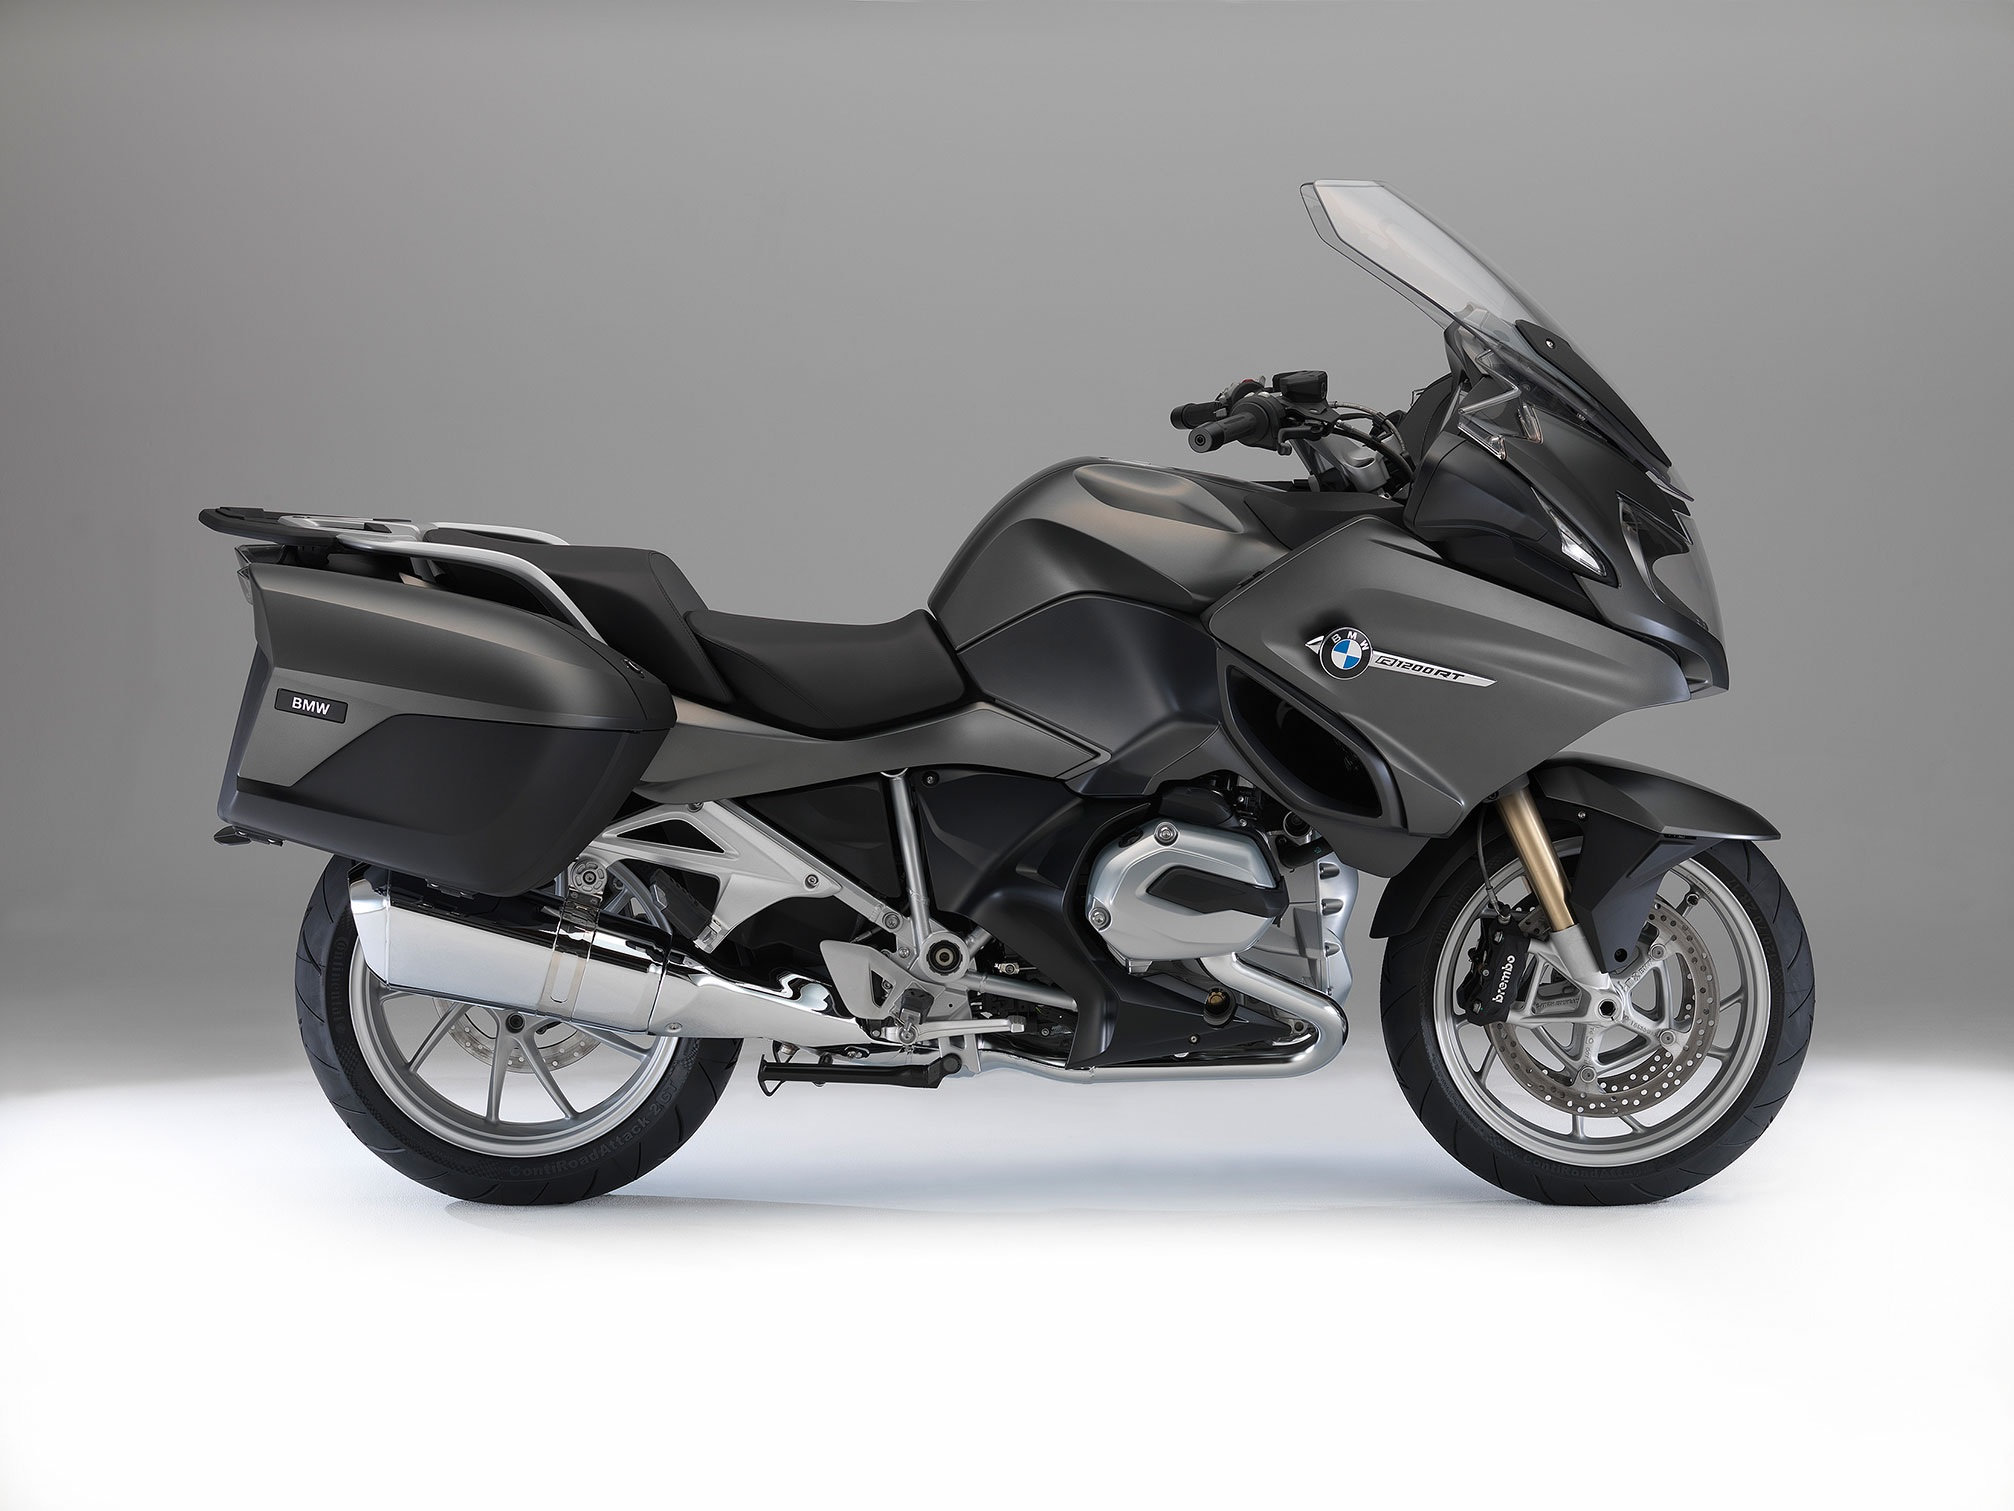 2014 BMW R1200RT Side View Studio Shot